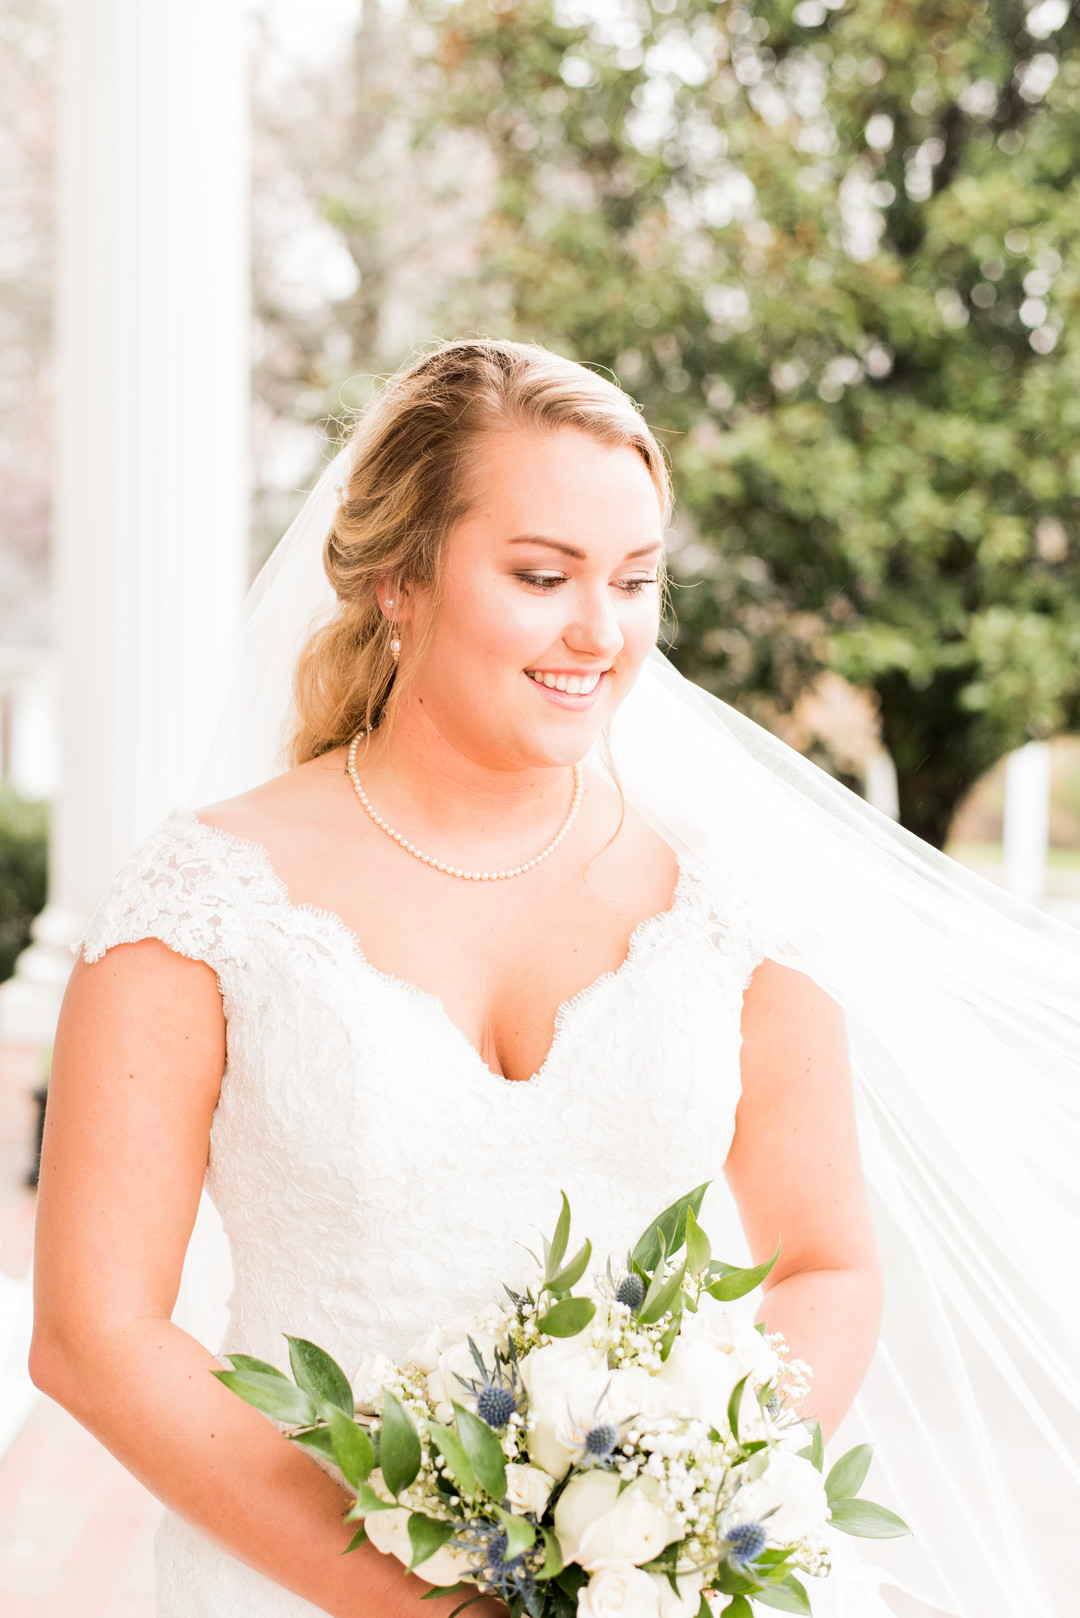 Jessica's Bridal Session at the Ryan Nicholas Inn | Palmetto State Weddings